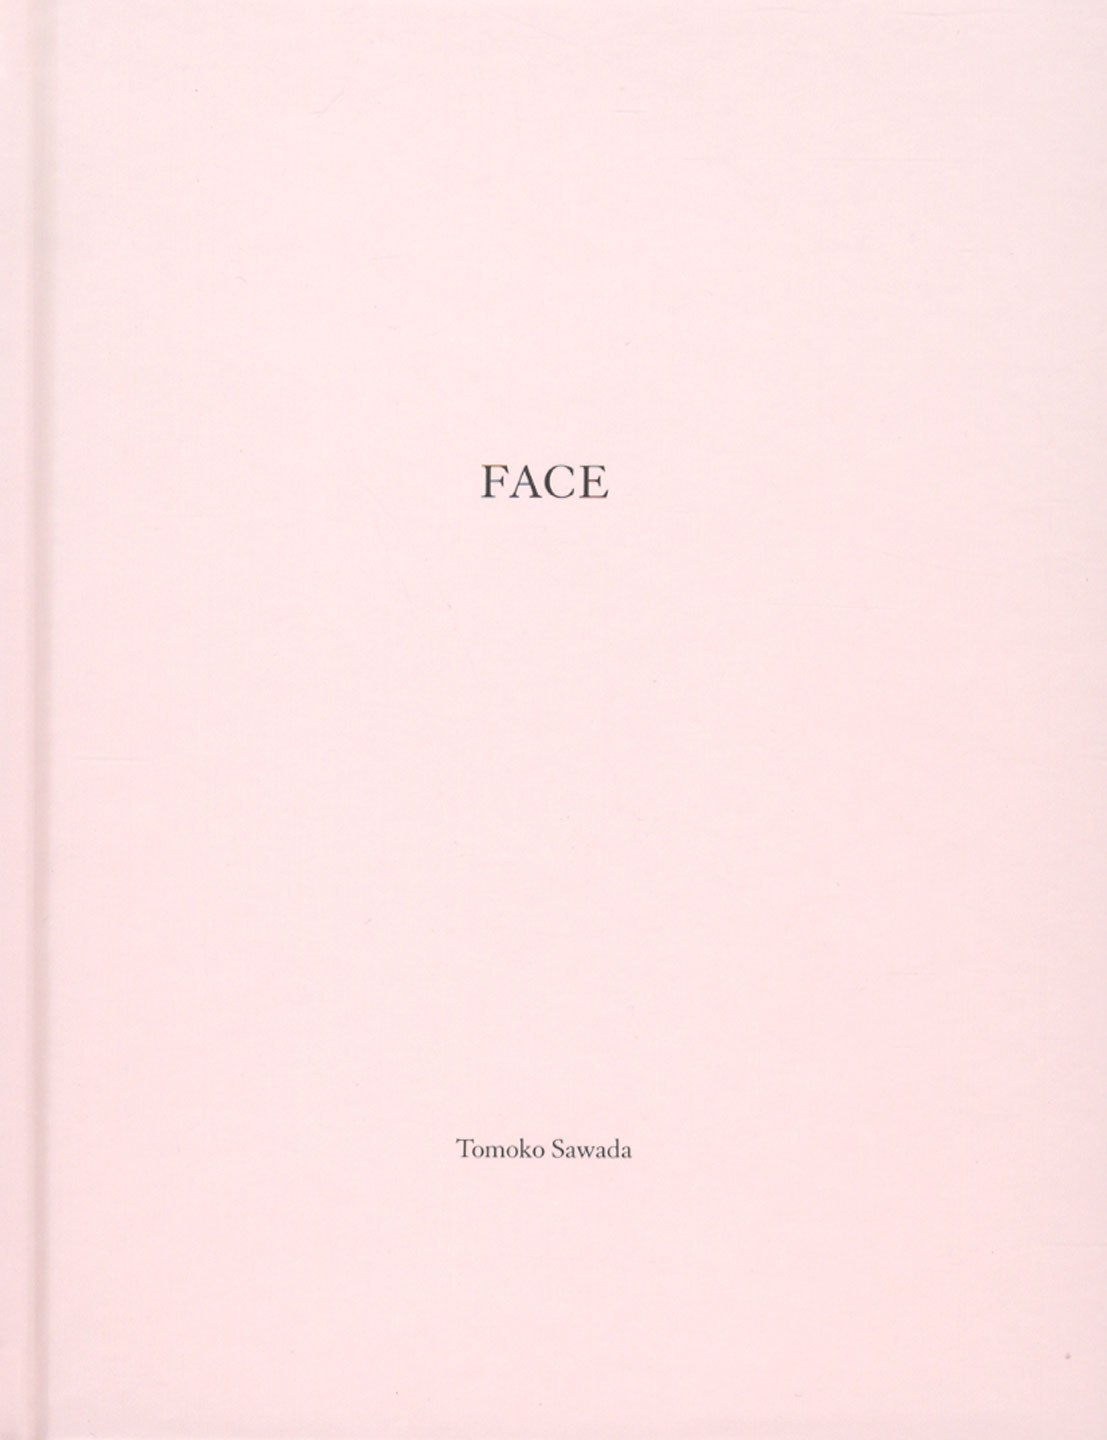 Tomoko Sawada: Face (One Picture Book #99), Limited Edition (with Print Variant 6 of 12)